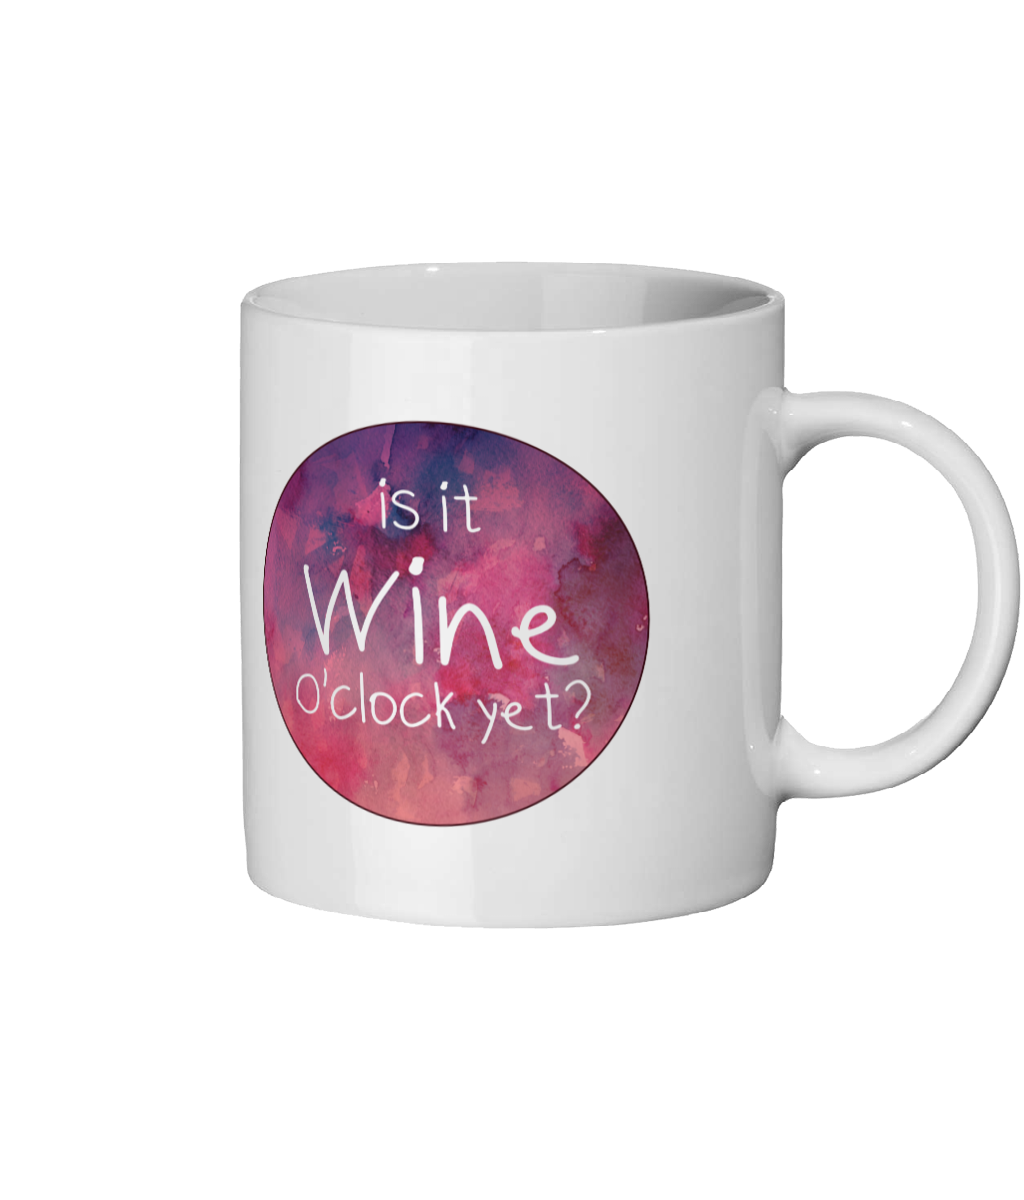 Wine Lovers Mug.  Is It Wine O'clock Yet? Funny Mug For The Office